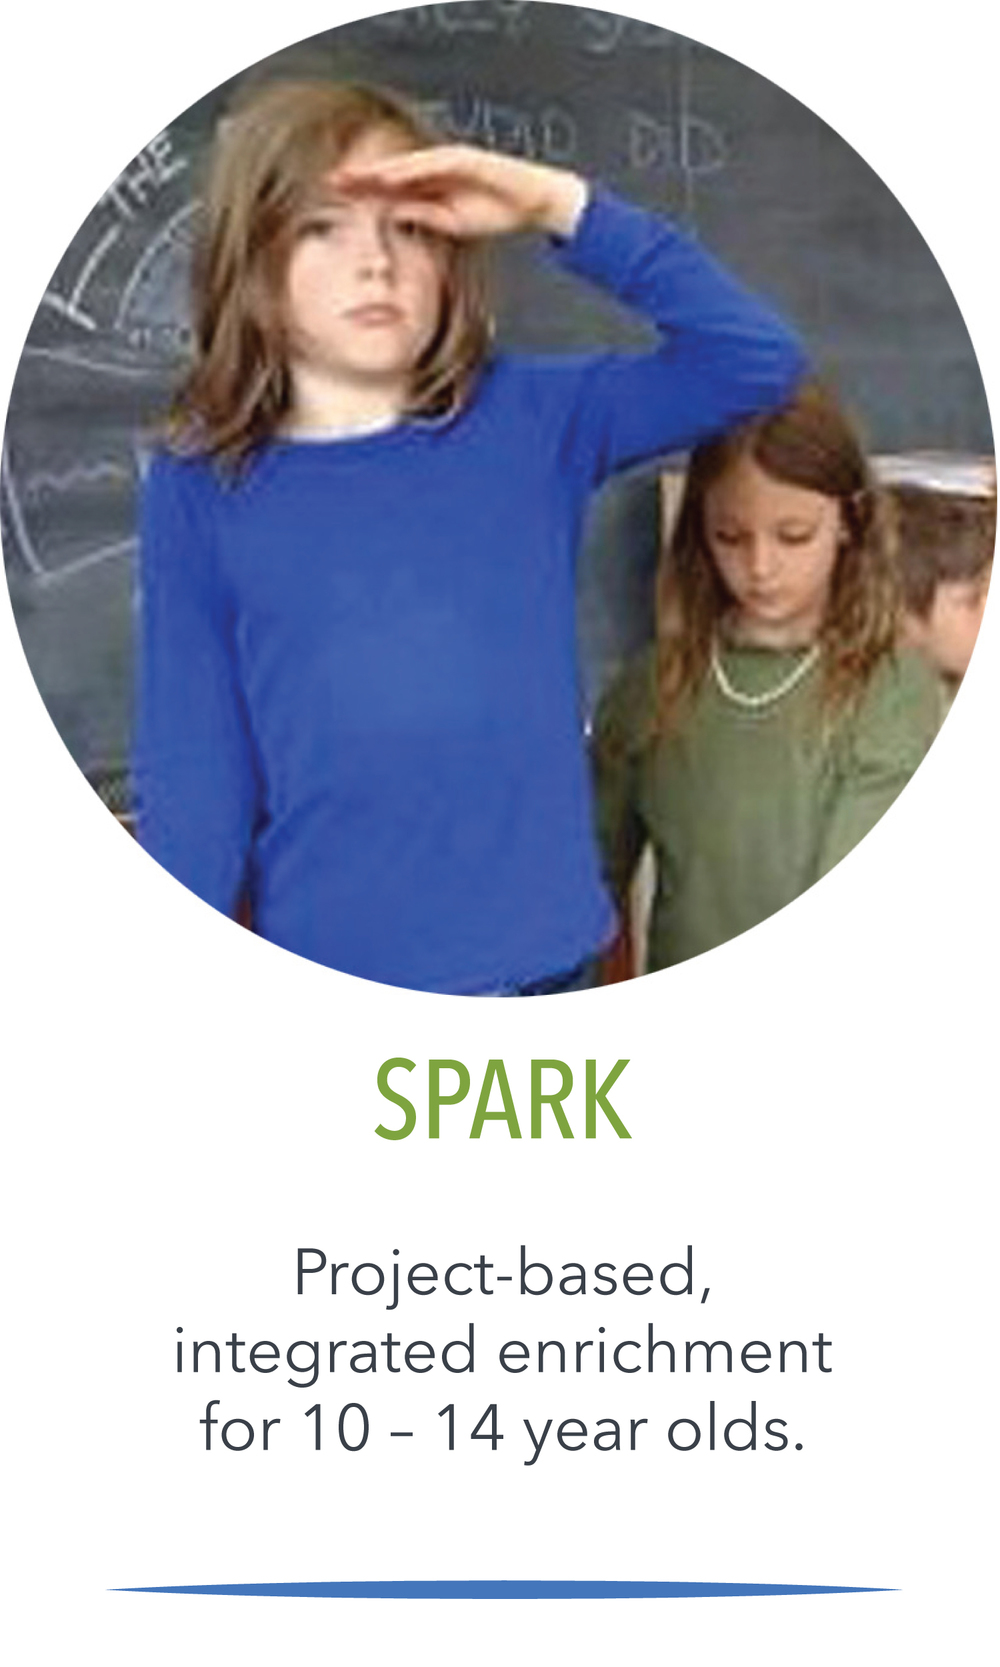 Click here to learn more about SPARK.